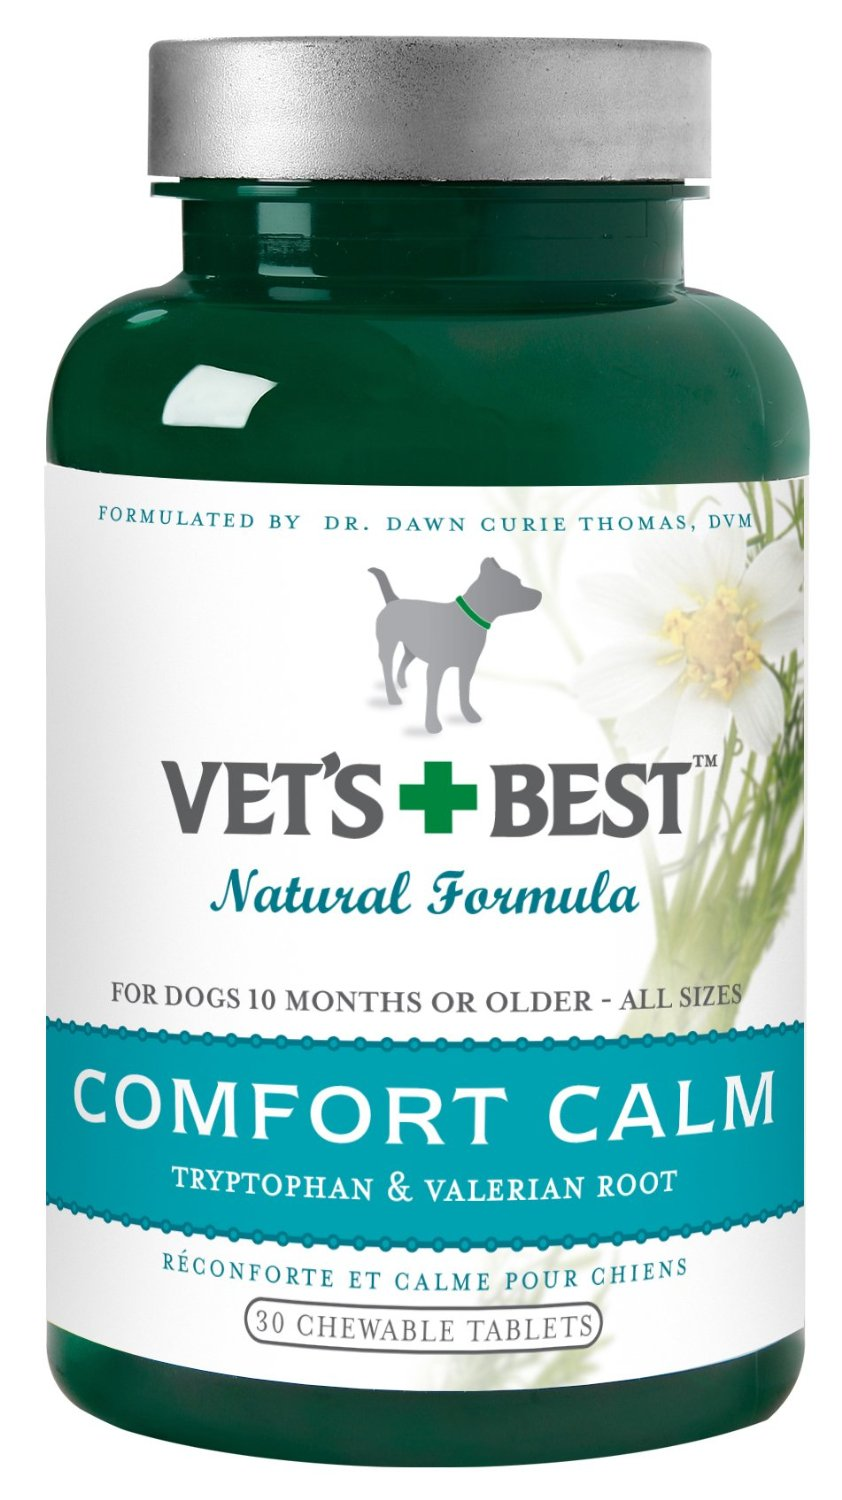 Vet's Best Comfort Calm Chewable Tablets